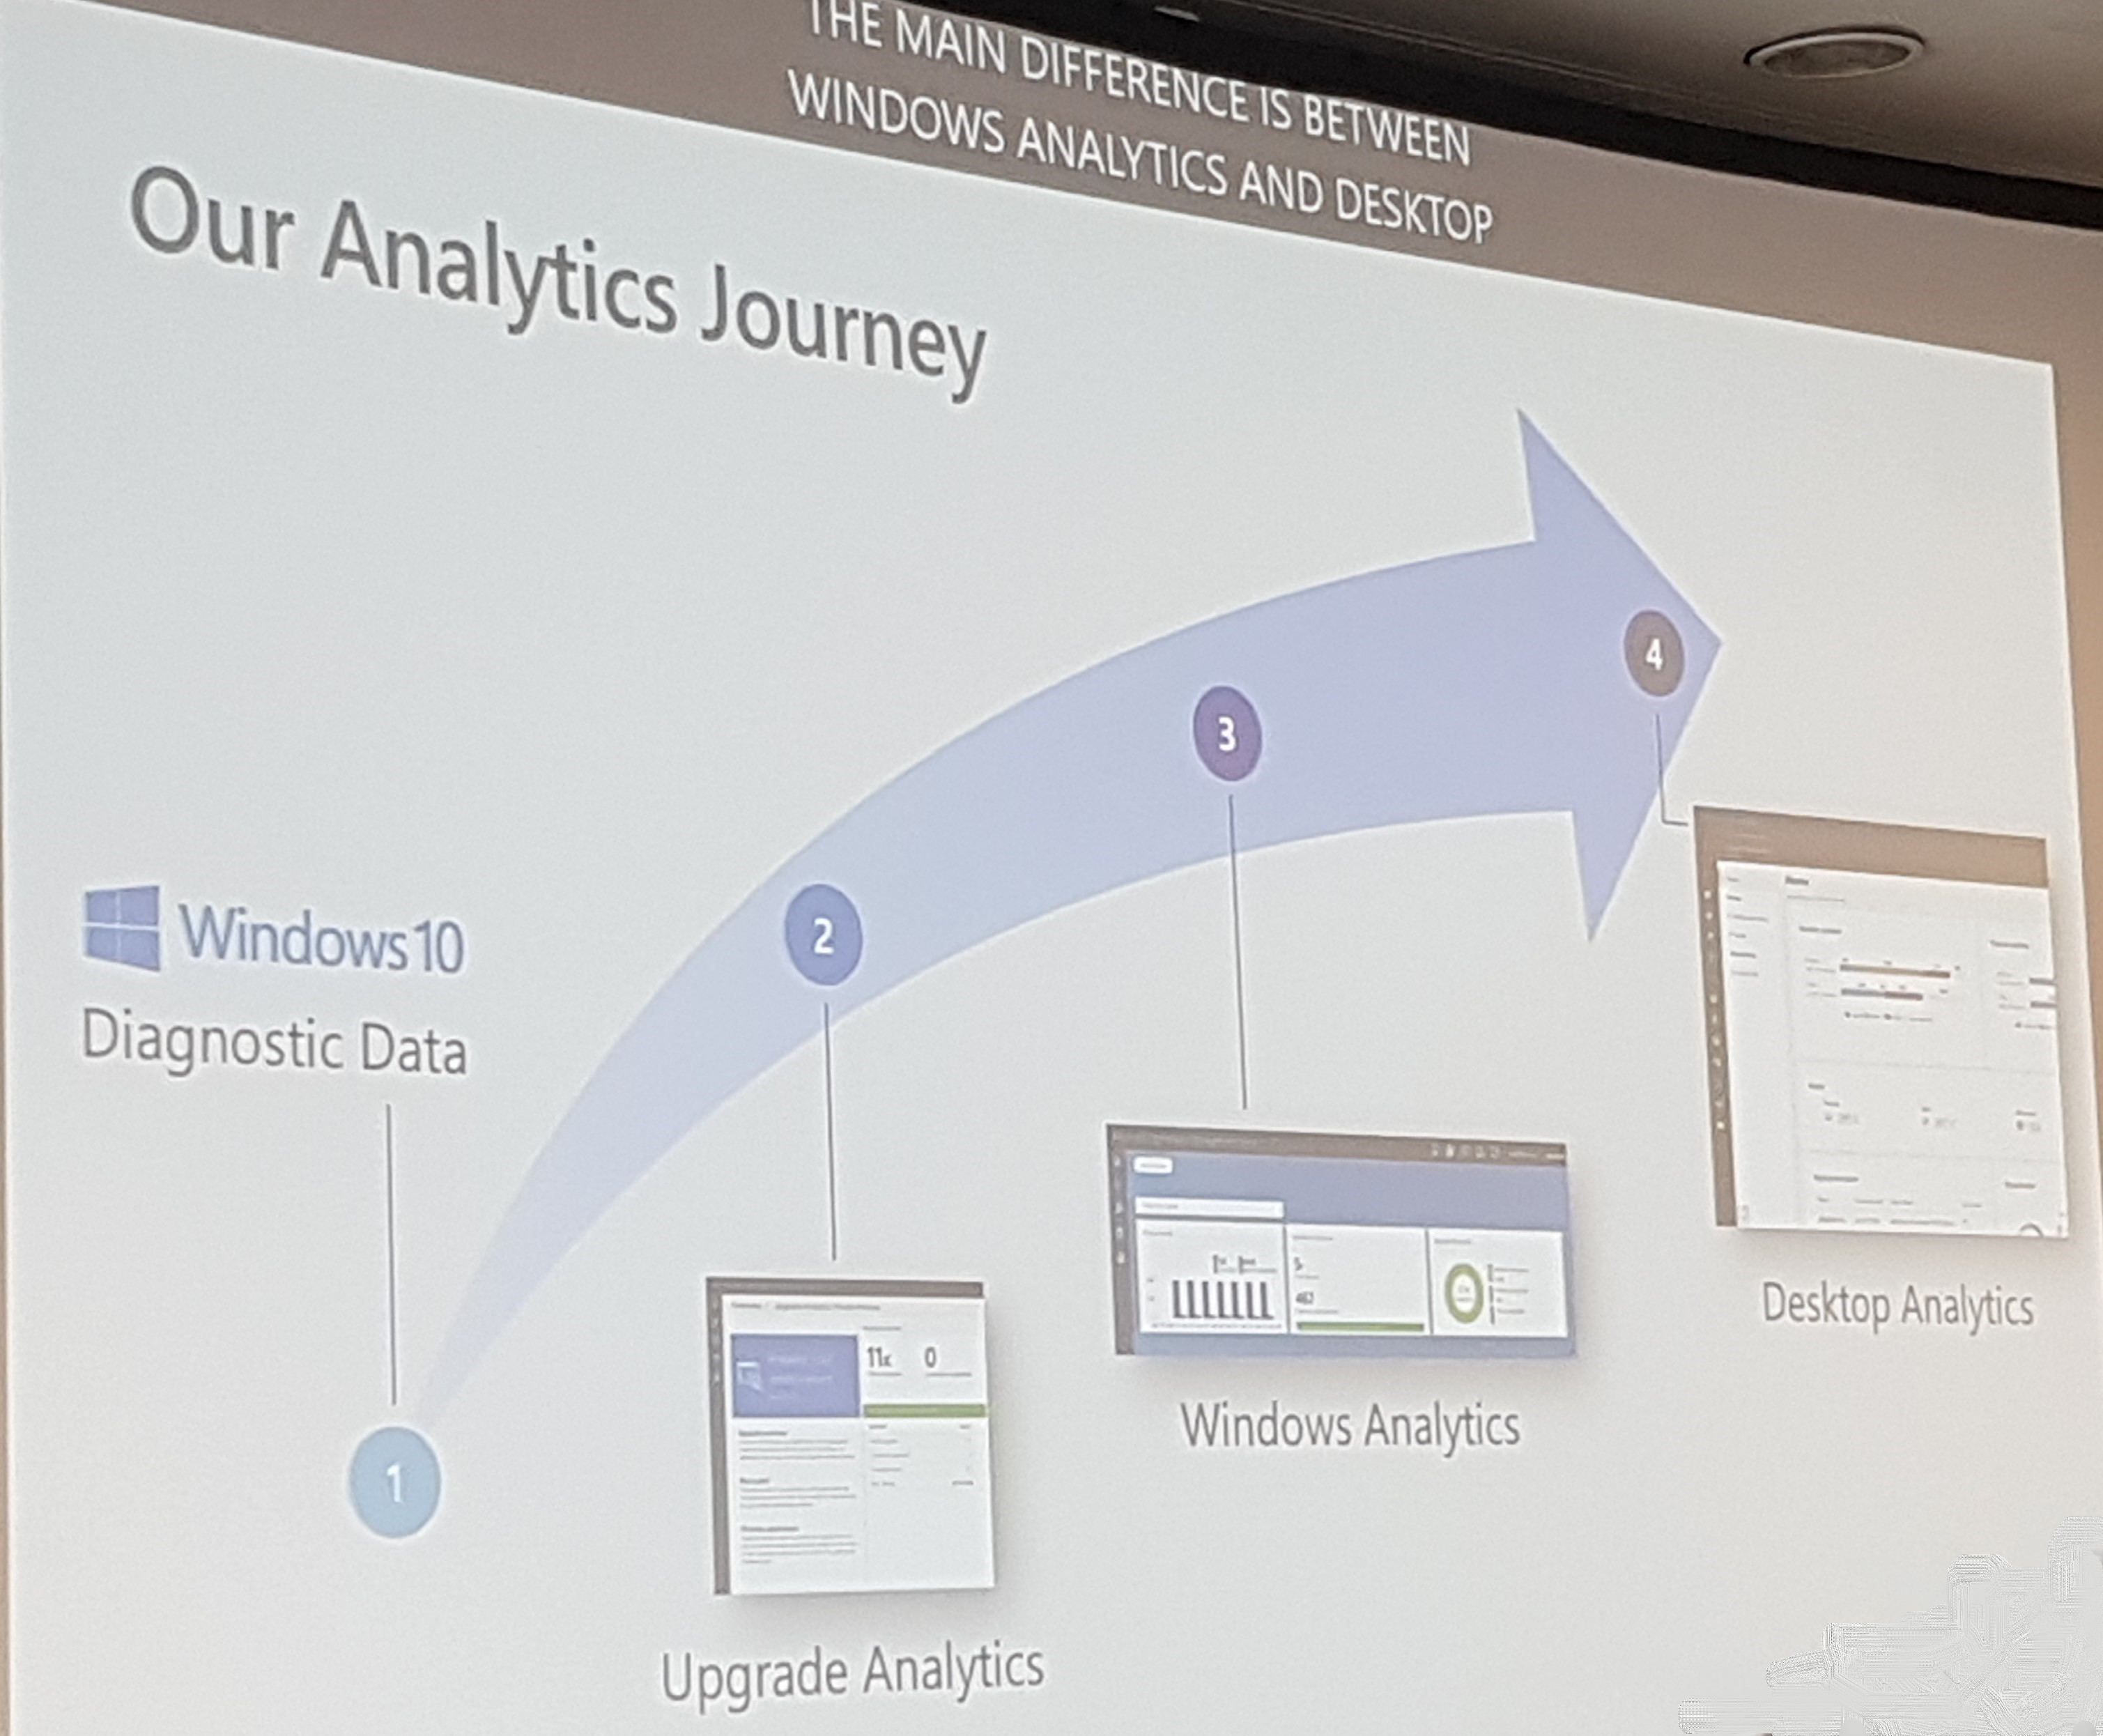 Desktop Analytics 101 - What You Need To Know